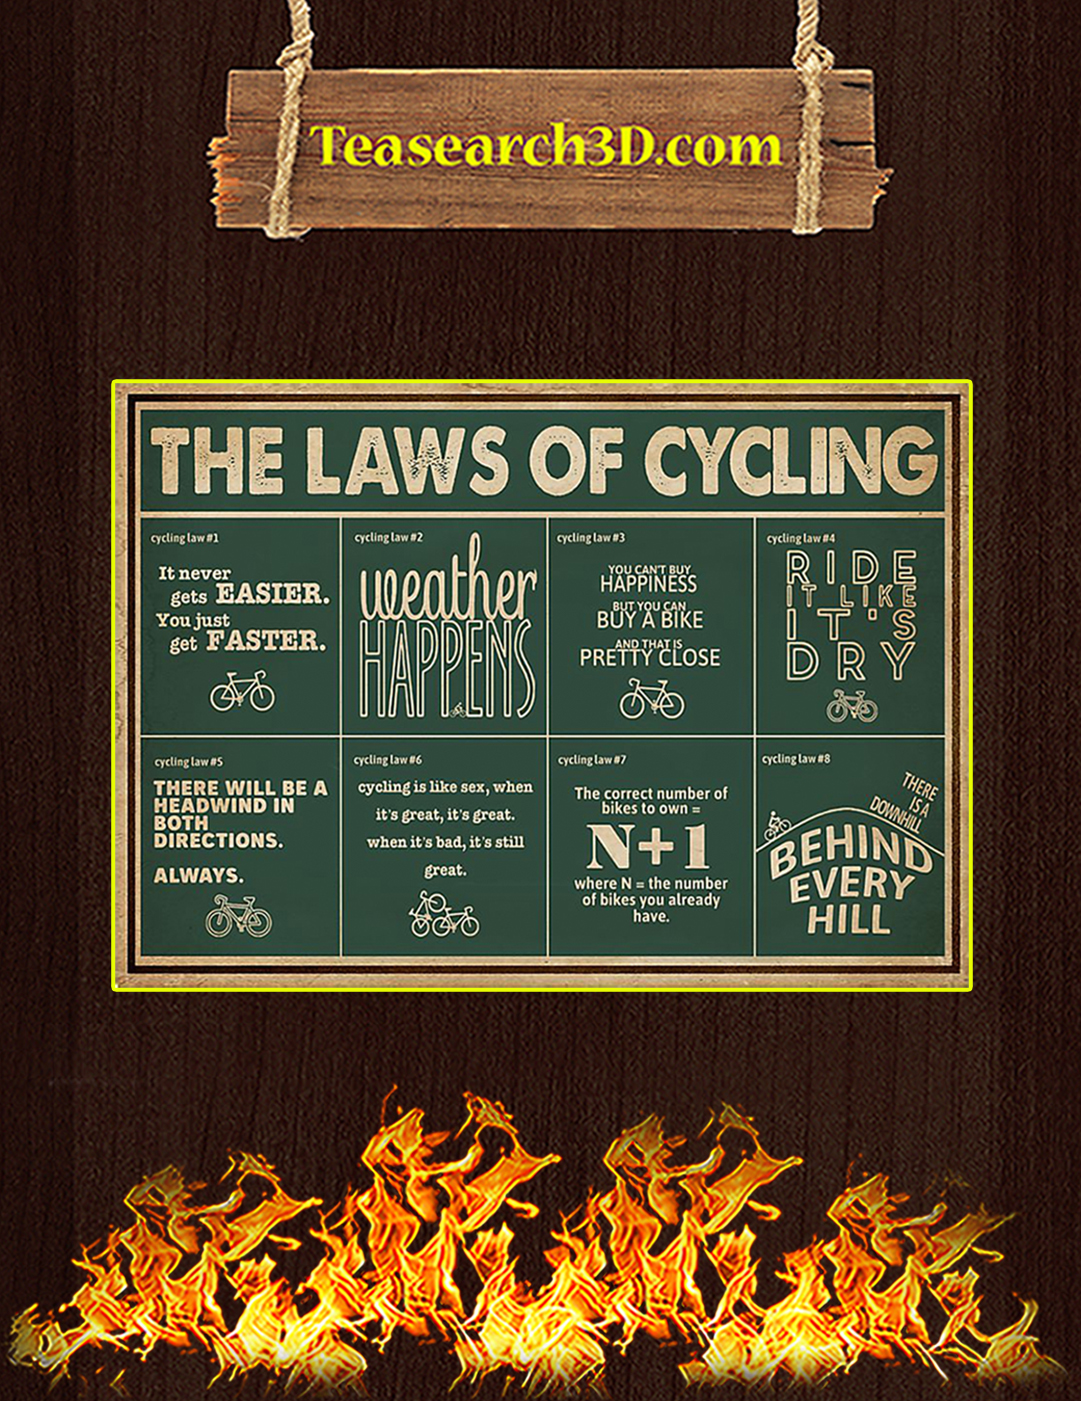 The laws of cycling poster A2